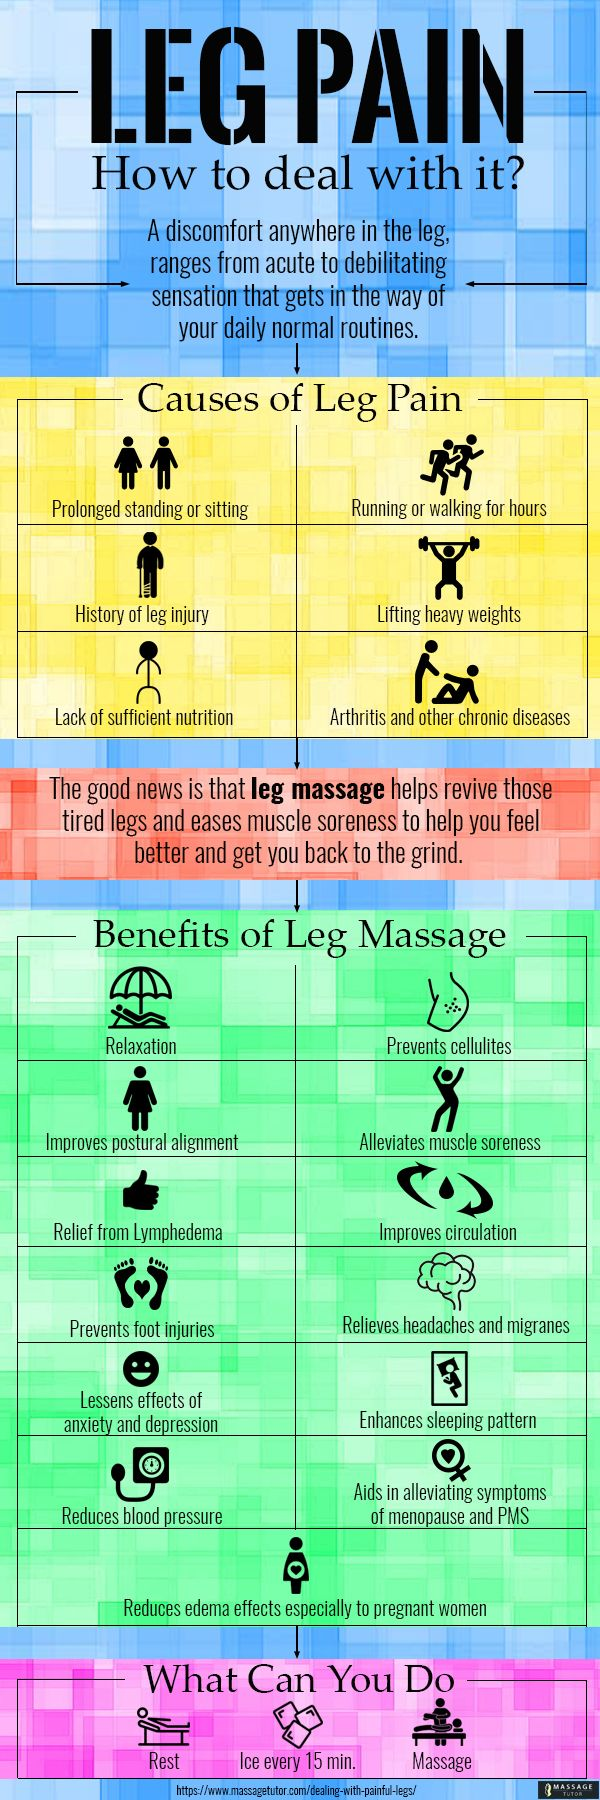 Deal With Painful Legs: Learn How  Got tired legs? Are they so painful to bear? Here is an infographic that will help you deal with painful legs. Visit https://www.massagetutor.com/dealing-with-painful-legs/ for full details. #legpain #legmassage #massage #infographic #learn